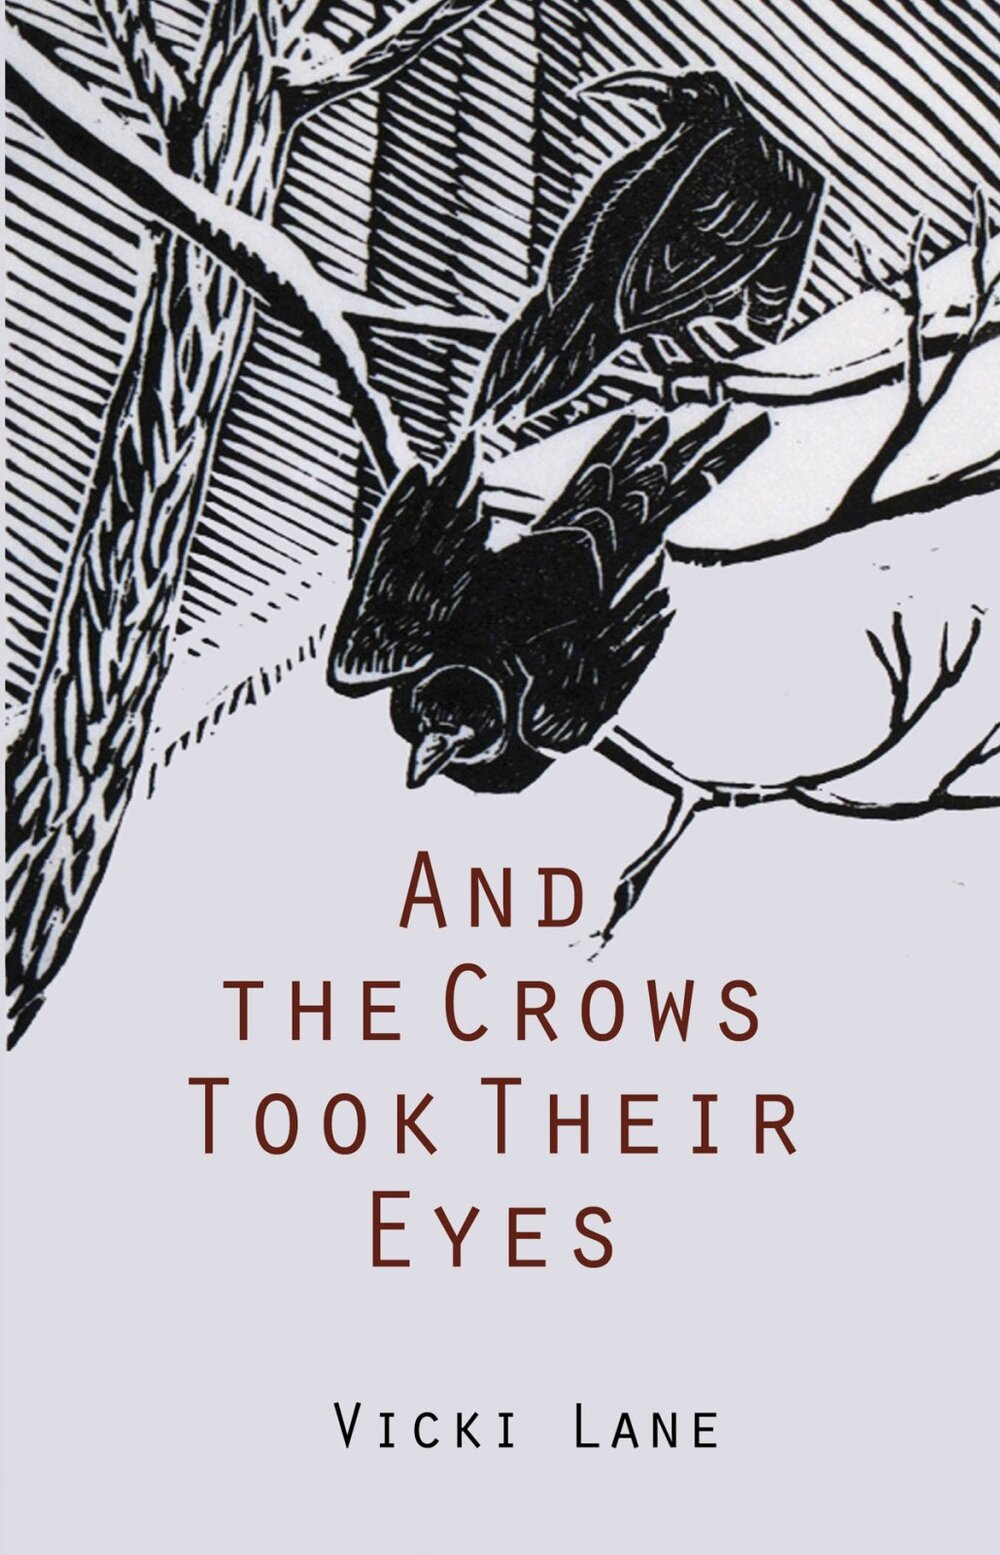 Cover art to the historical novel And the Crows Took Their Eyes by Vicki Lane